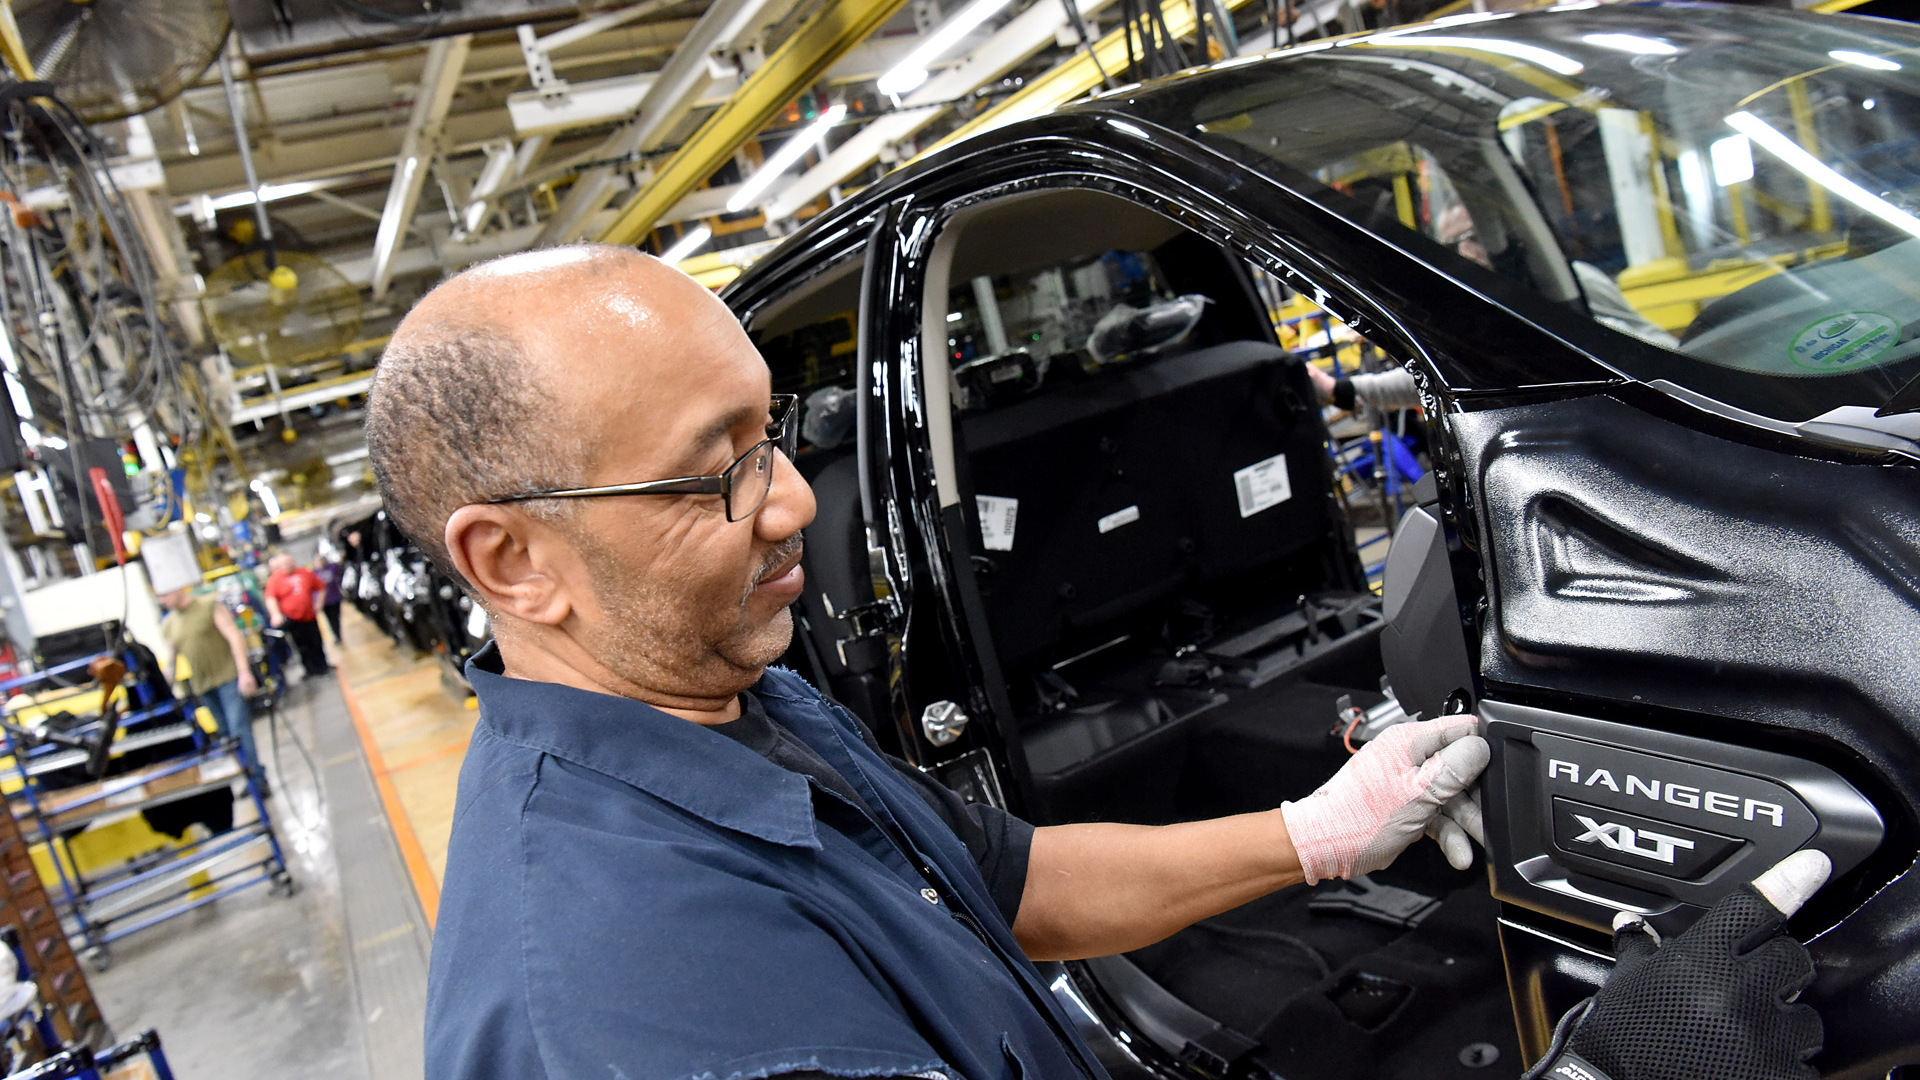 Production at Ford's Michigan Assembly Plant in Wayne, Michigan